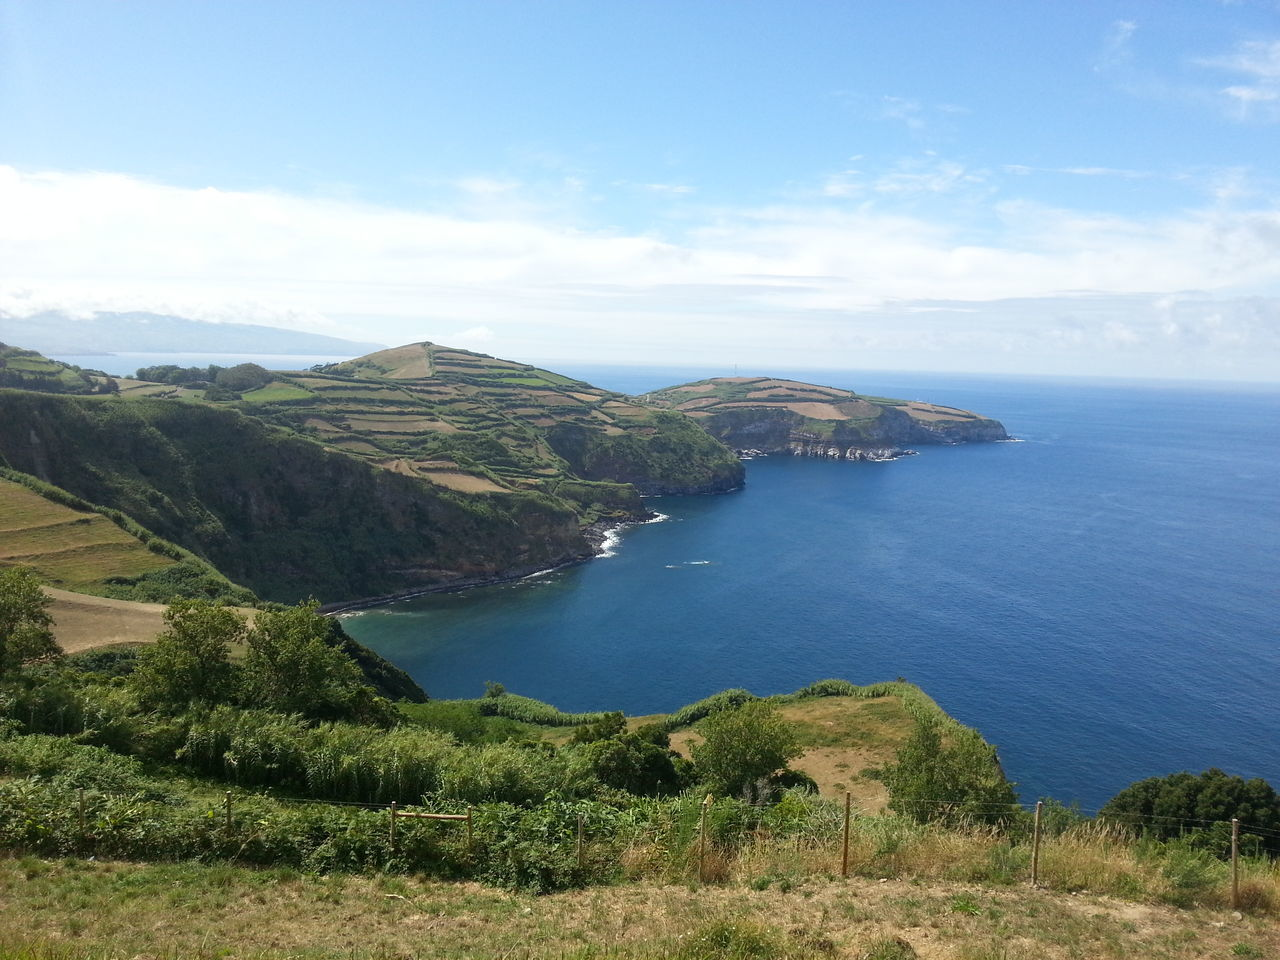 Azores Azores, S. Miguel Beauty In Nature Coastline Day Horizon Over Water Idyllic Landscape Mountain Nature No People Outdoors S.miguel Saomiguel Scenics Sea Sky Tranquil Scene Tranquility Water